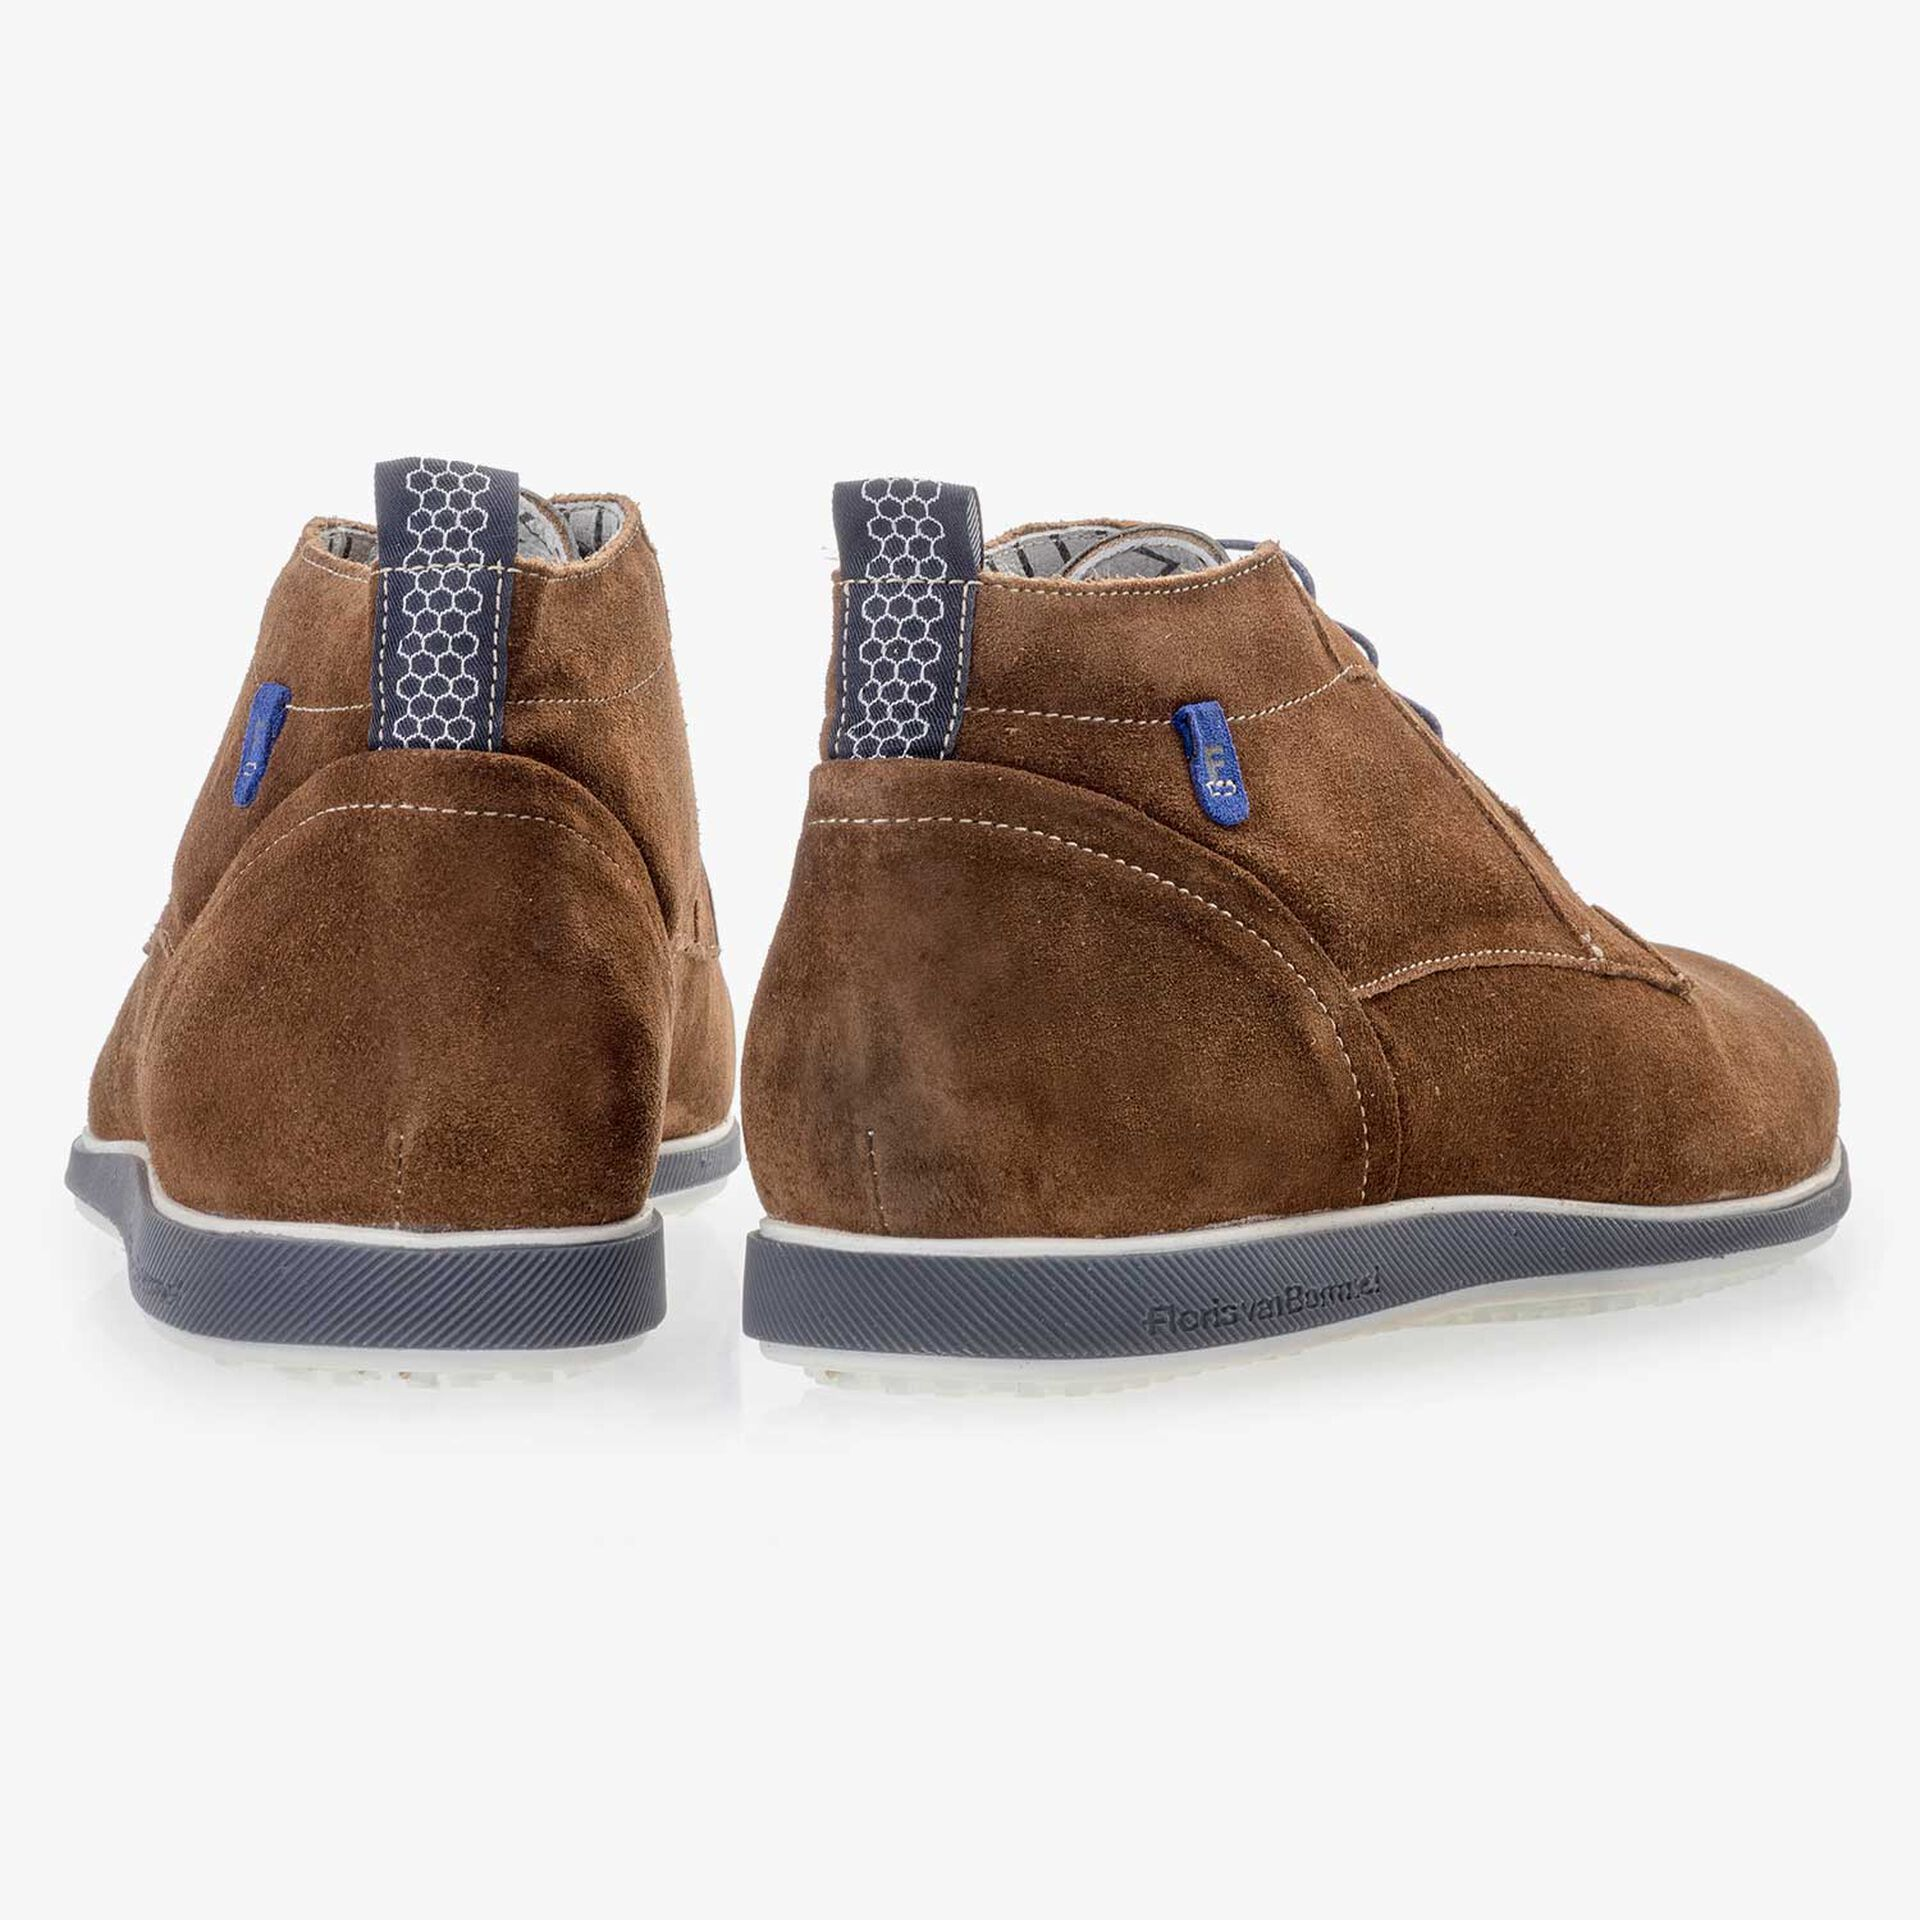 Mid-brown suede leather lace boot